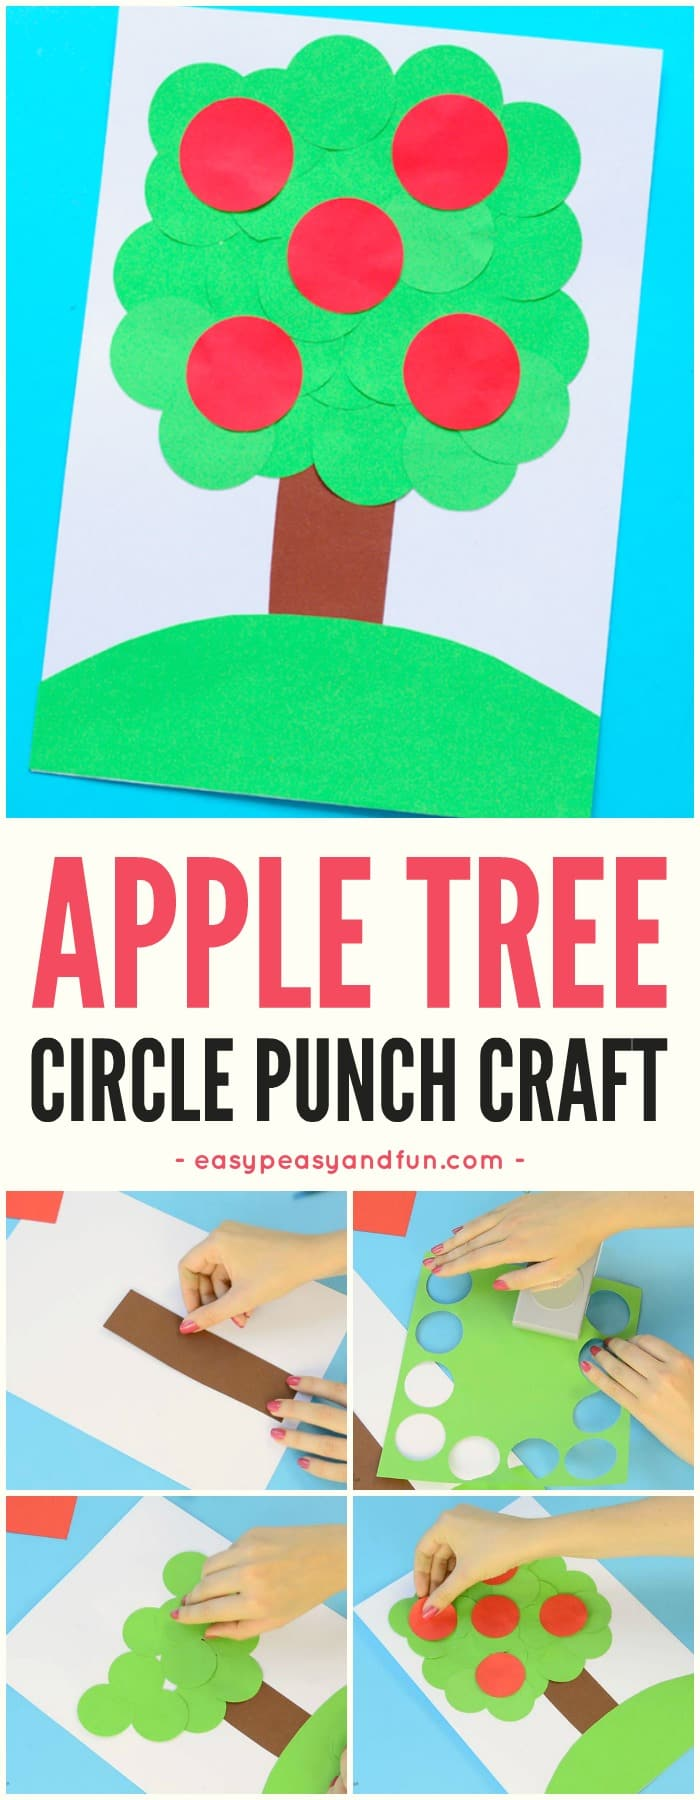 Simple Apple Tree Circle Punch Craft for Kids